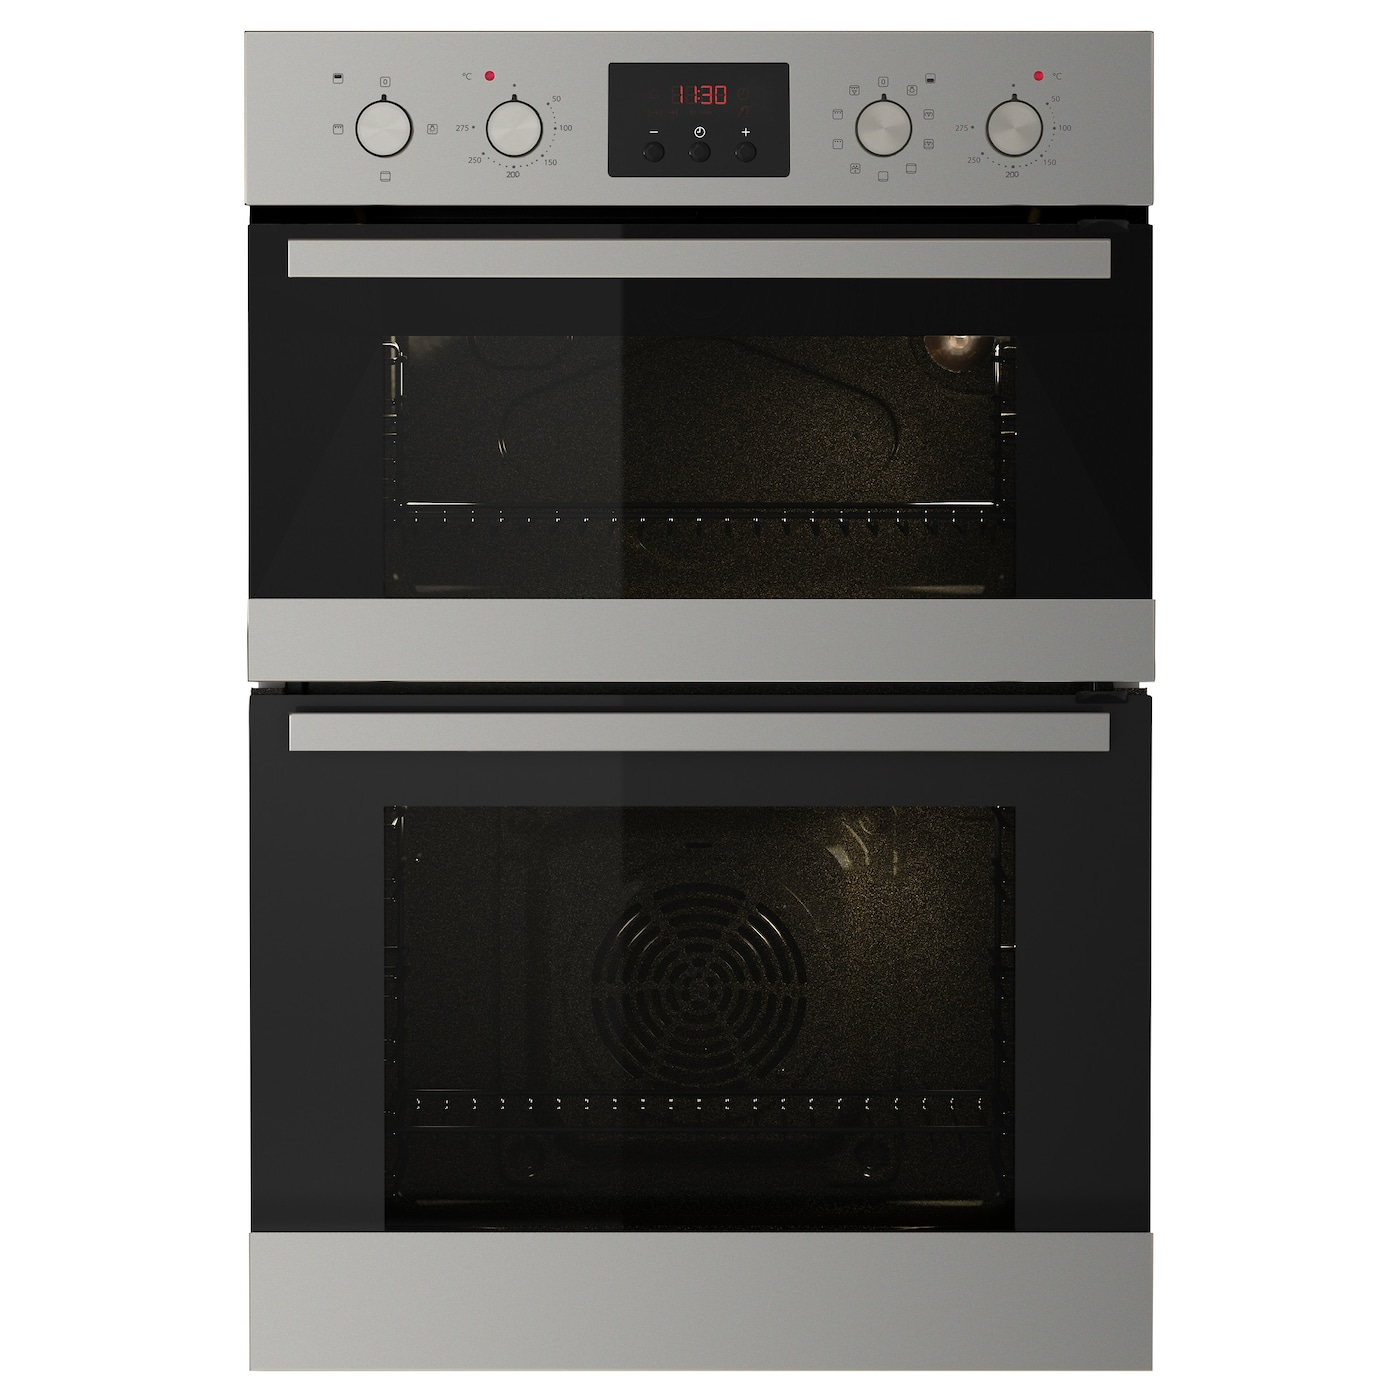 IKEA VALFRI double oven 5 year guarantee. Read about the terms in the guarantee brochure.